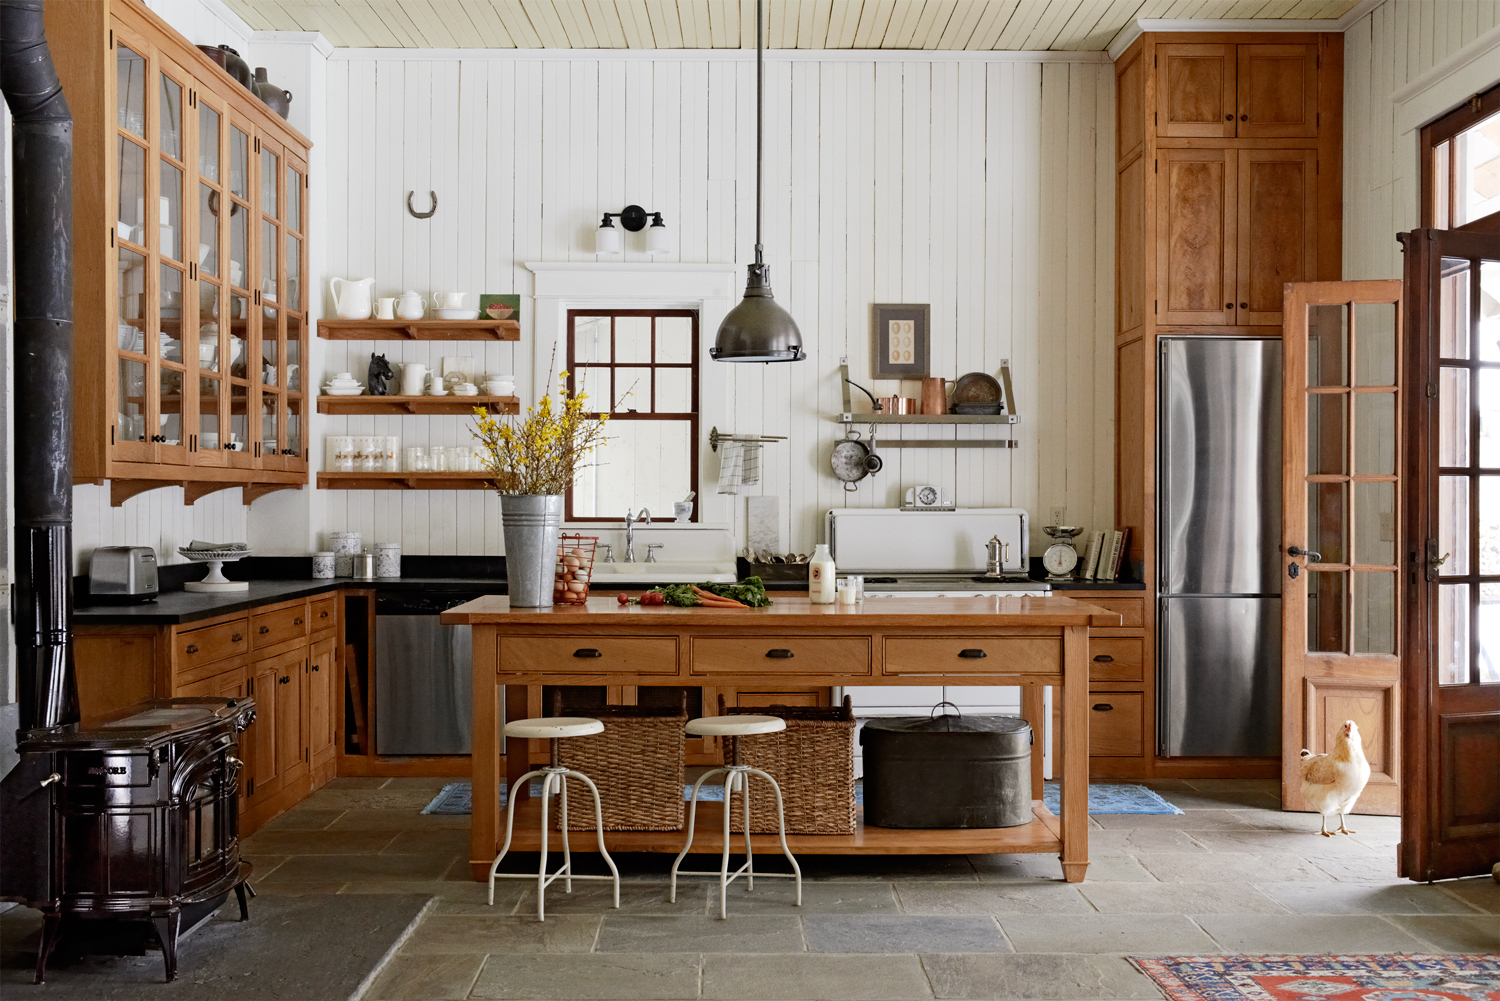 Kitchen Ideas Modern Country 100+ kitchen design ideas - pictures of country kitchen decorating